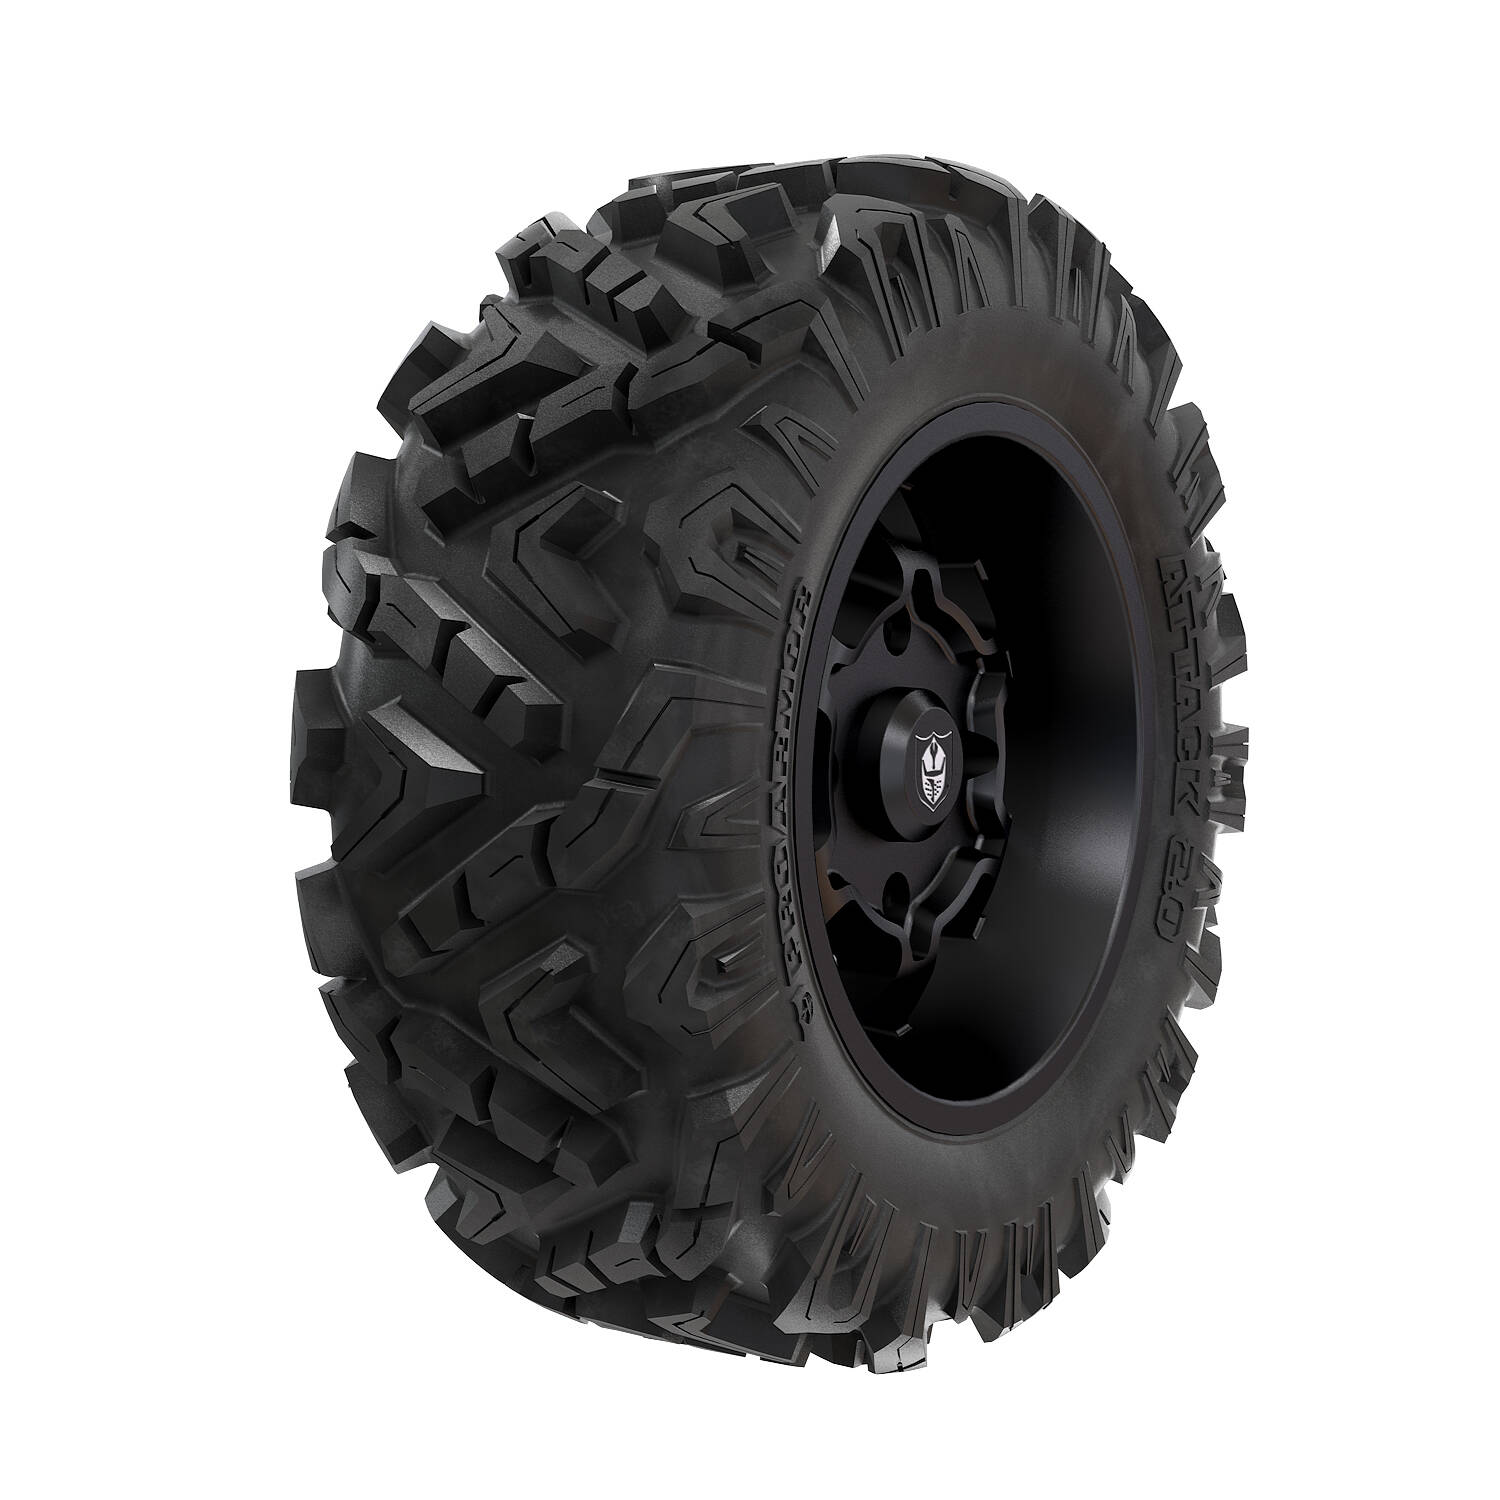 Pro Armor® Wheel & Tire Set: Cyclone - Matte Black & Attack 2.0 - 28""